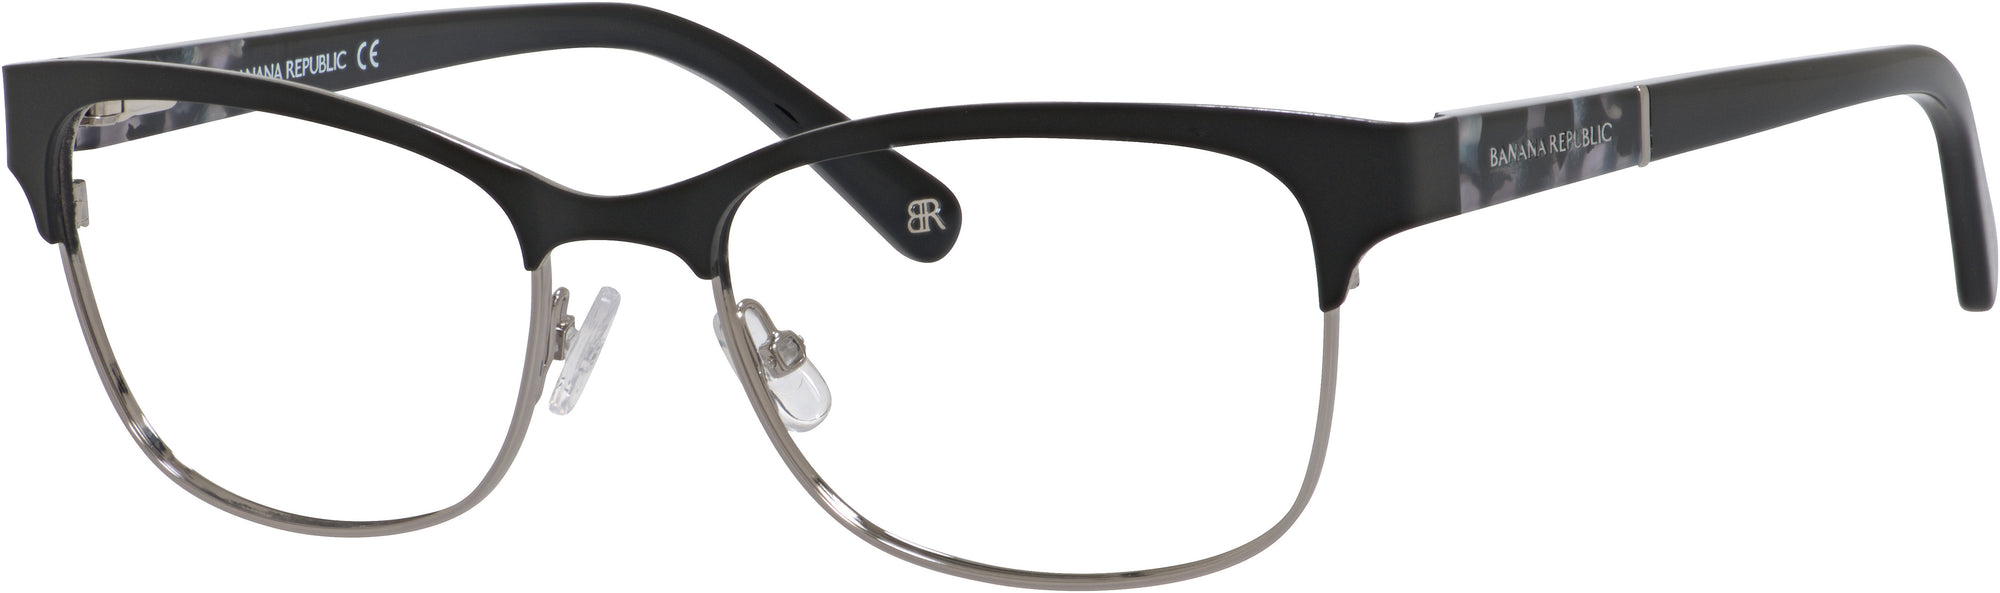 Banana Republic Burke Rectangular Sunglasses 0284-0284  Black Ruthenium (00 Demo Lens)